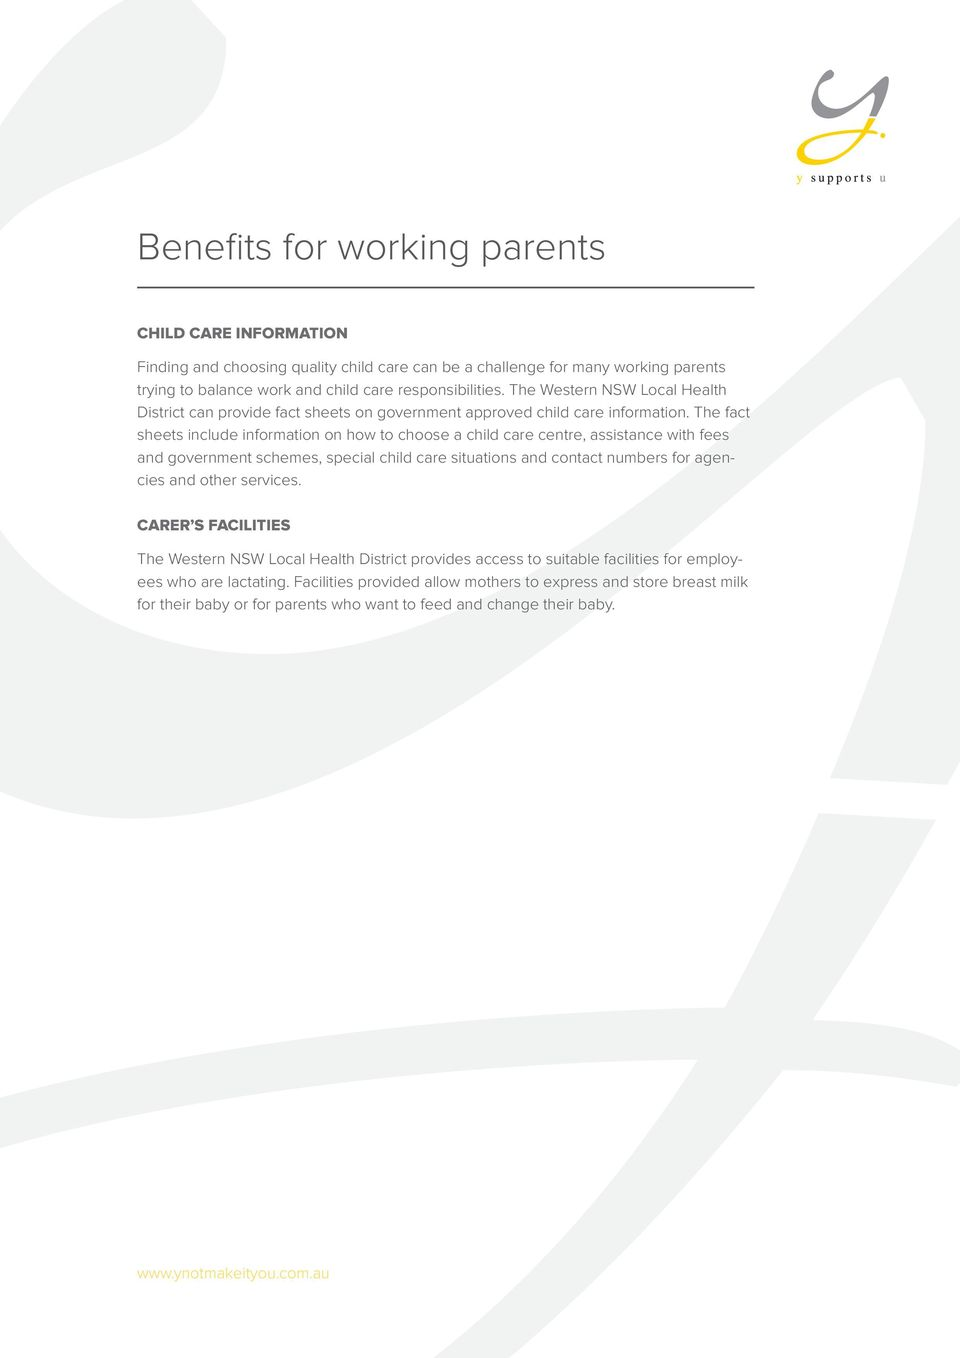 The fact sheets include information on how to choose a child care centre, assistance with fees and government schemes, special child care situations and contact numbers for agencies and other